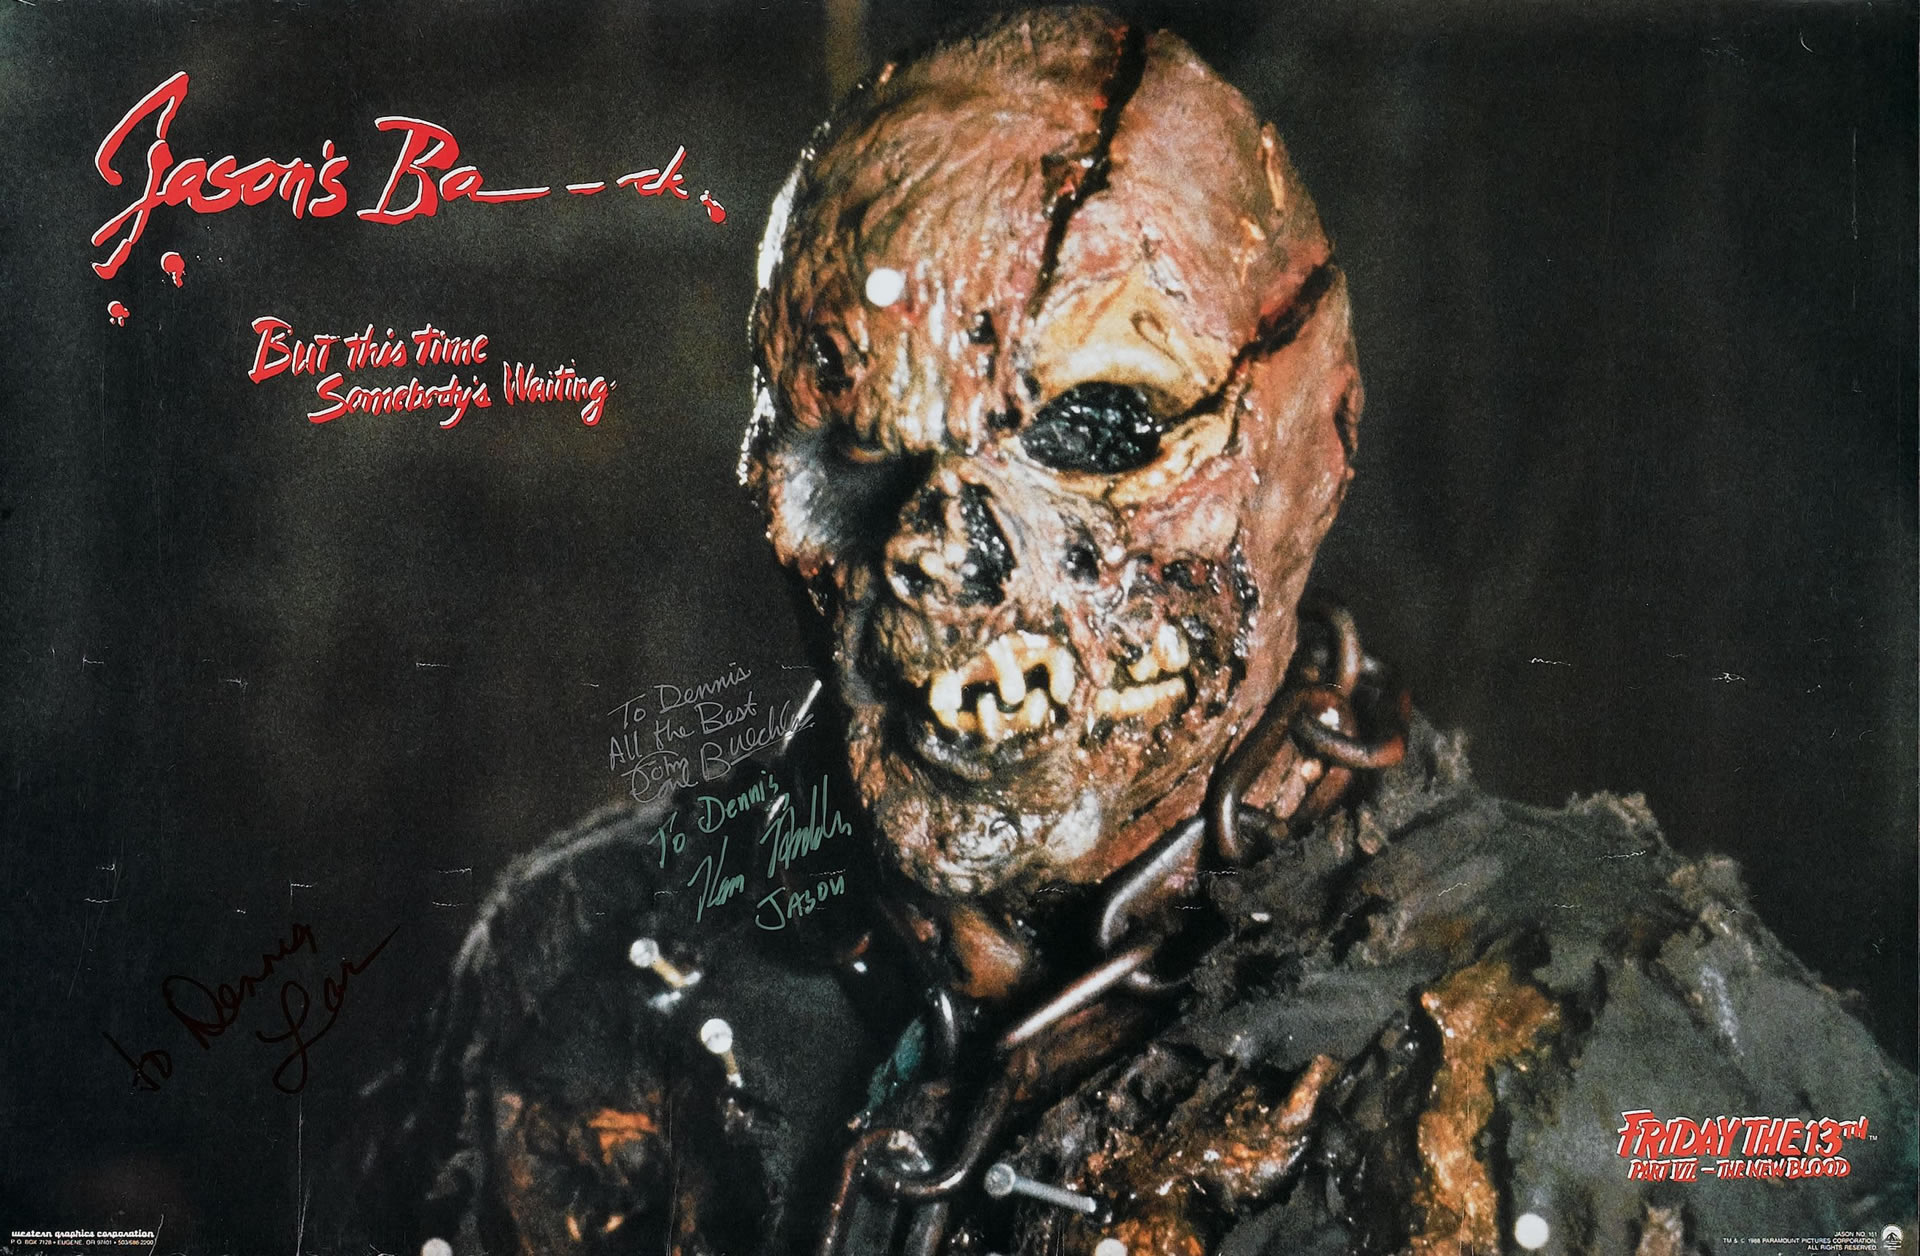 Friday 13th Part 7